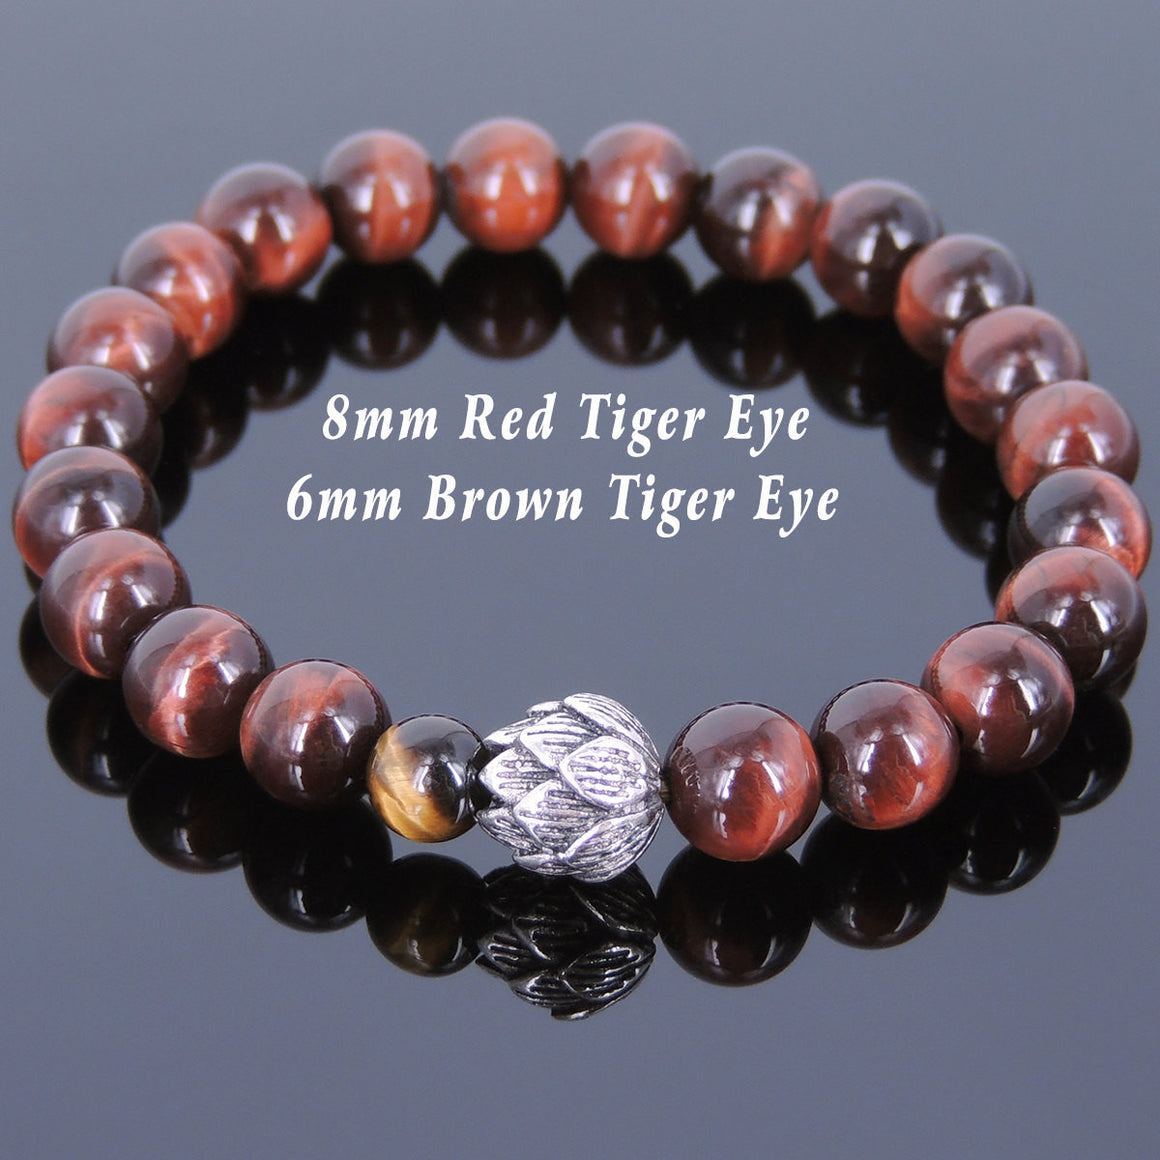 Red & Brown Tiger Eye Healing Gemstone Bracelet with S925 Genuine Sterling Silver Lotus Bead - Handmade by Gem & Silver TSB